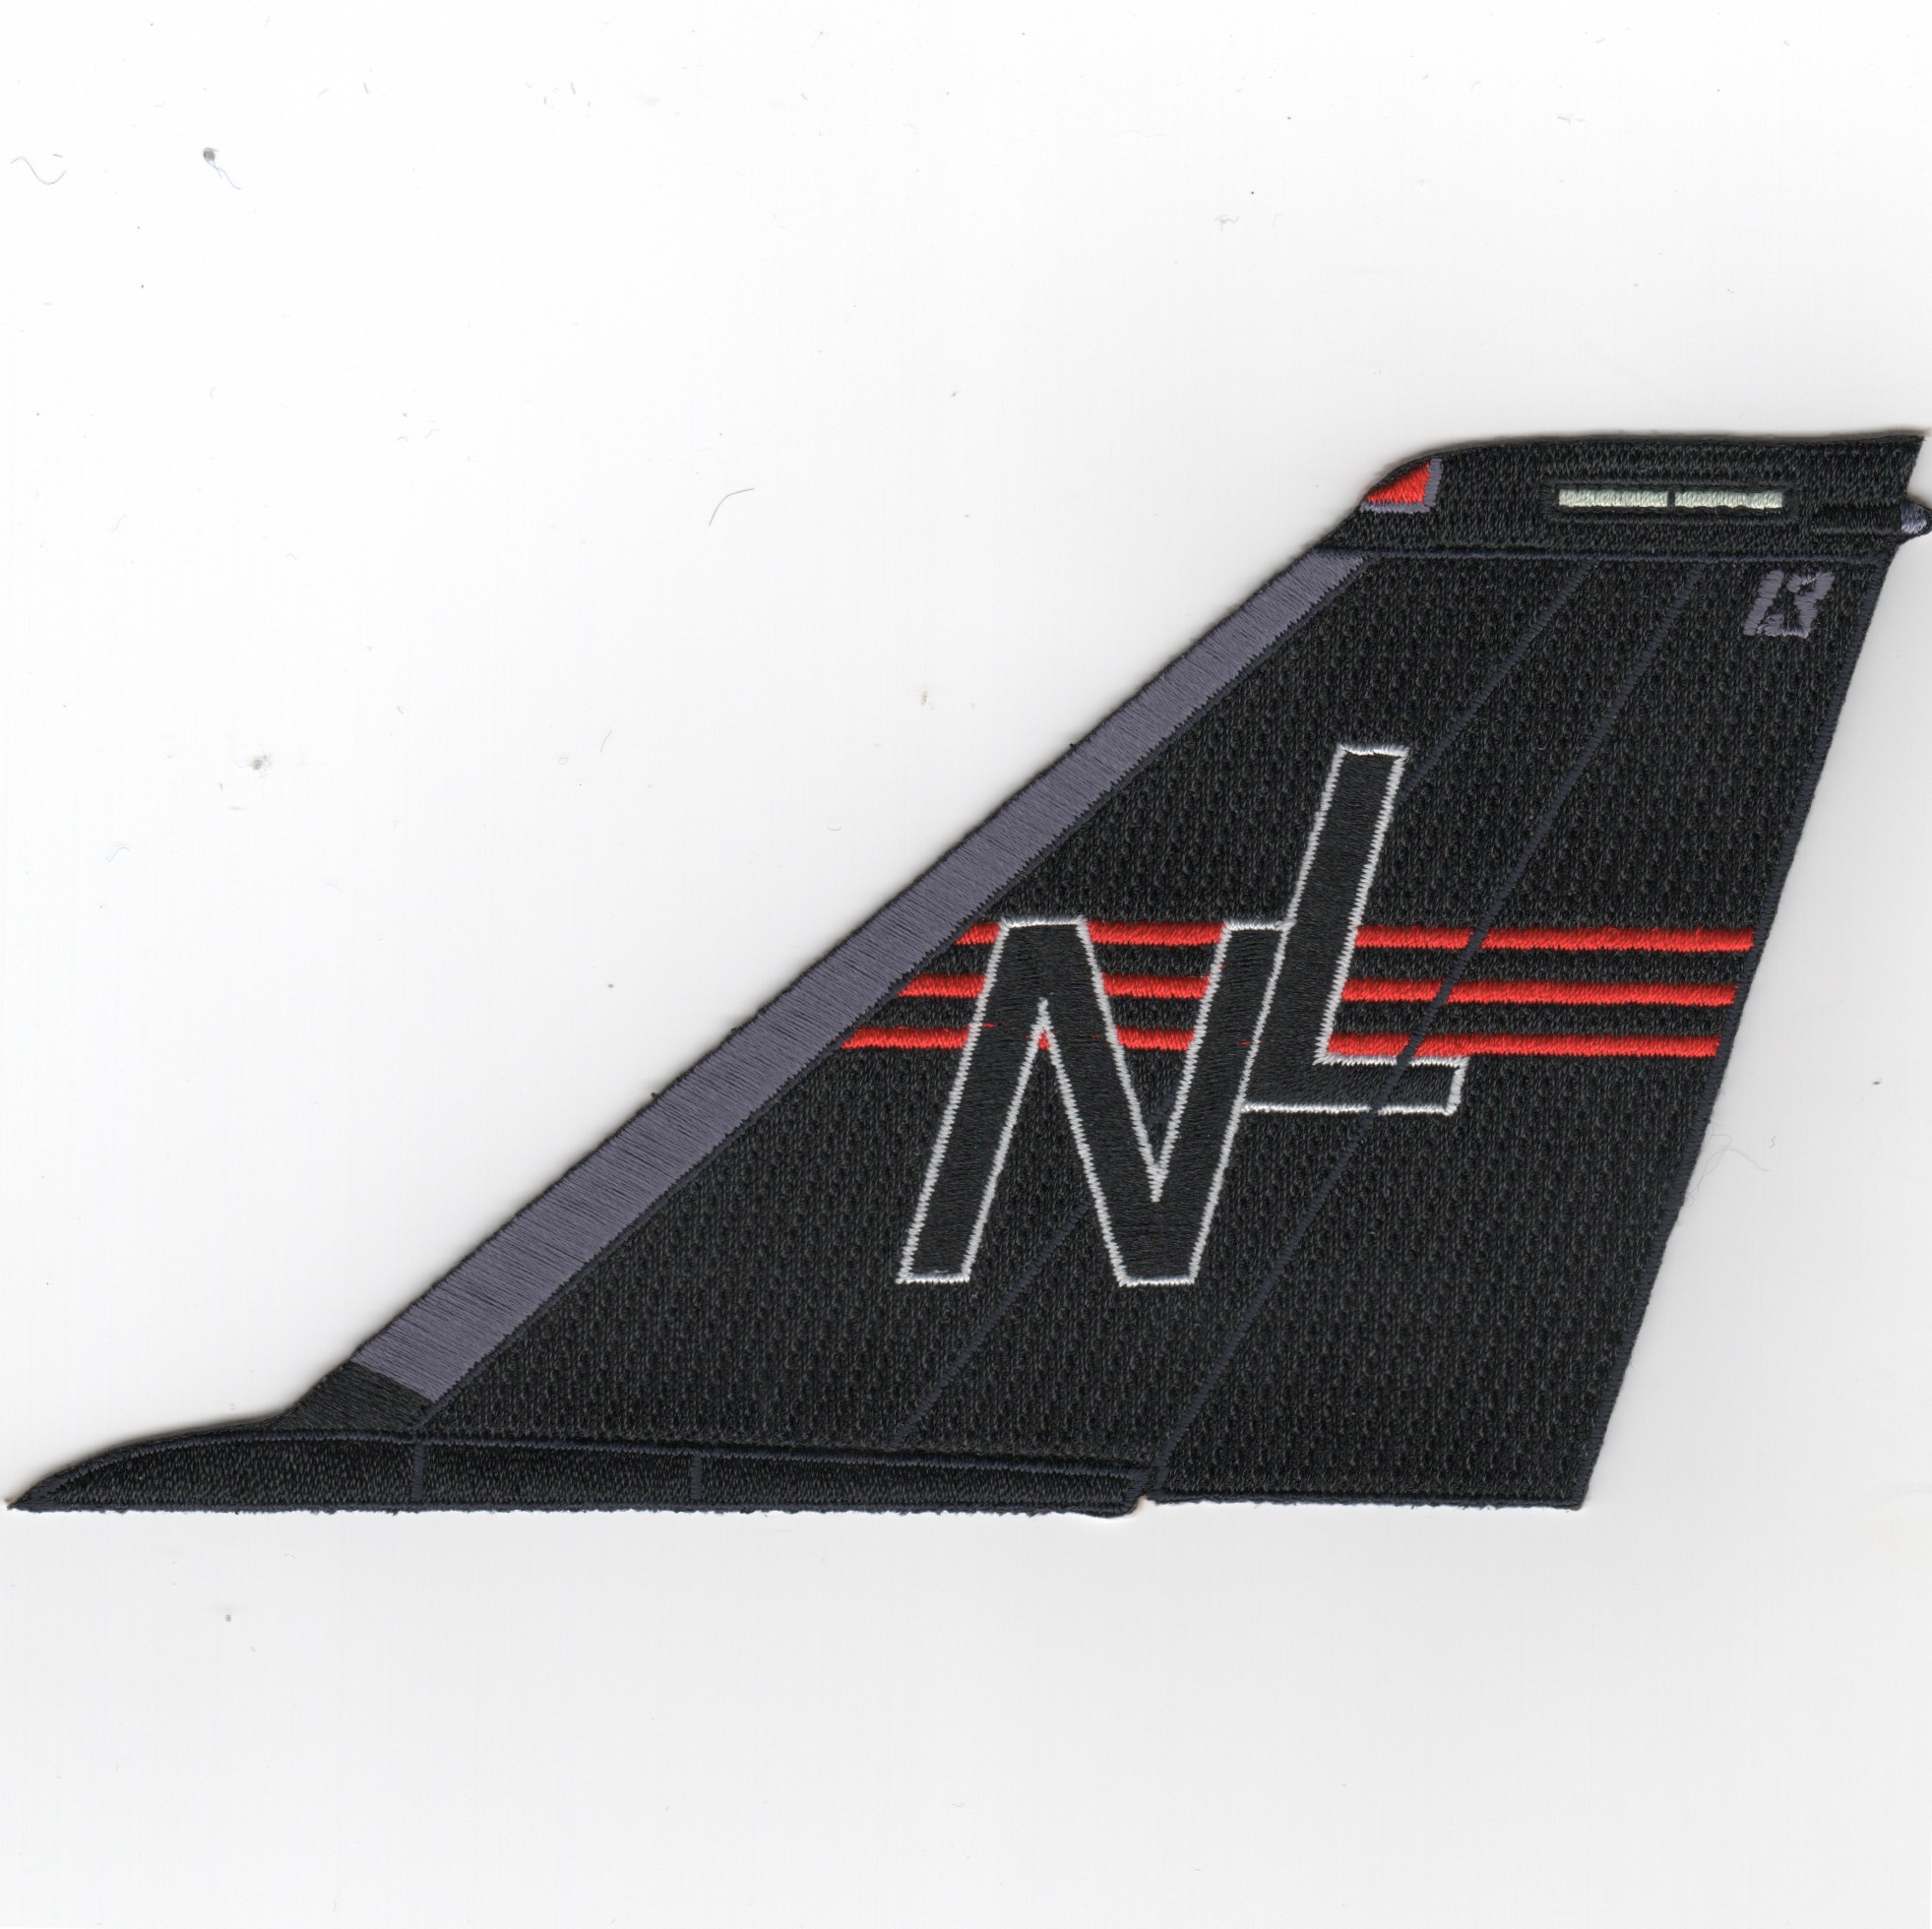 VF-51 F-14 Tomcat TailFin (No Text)